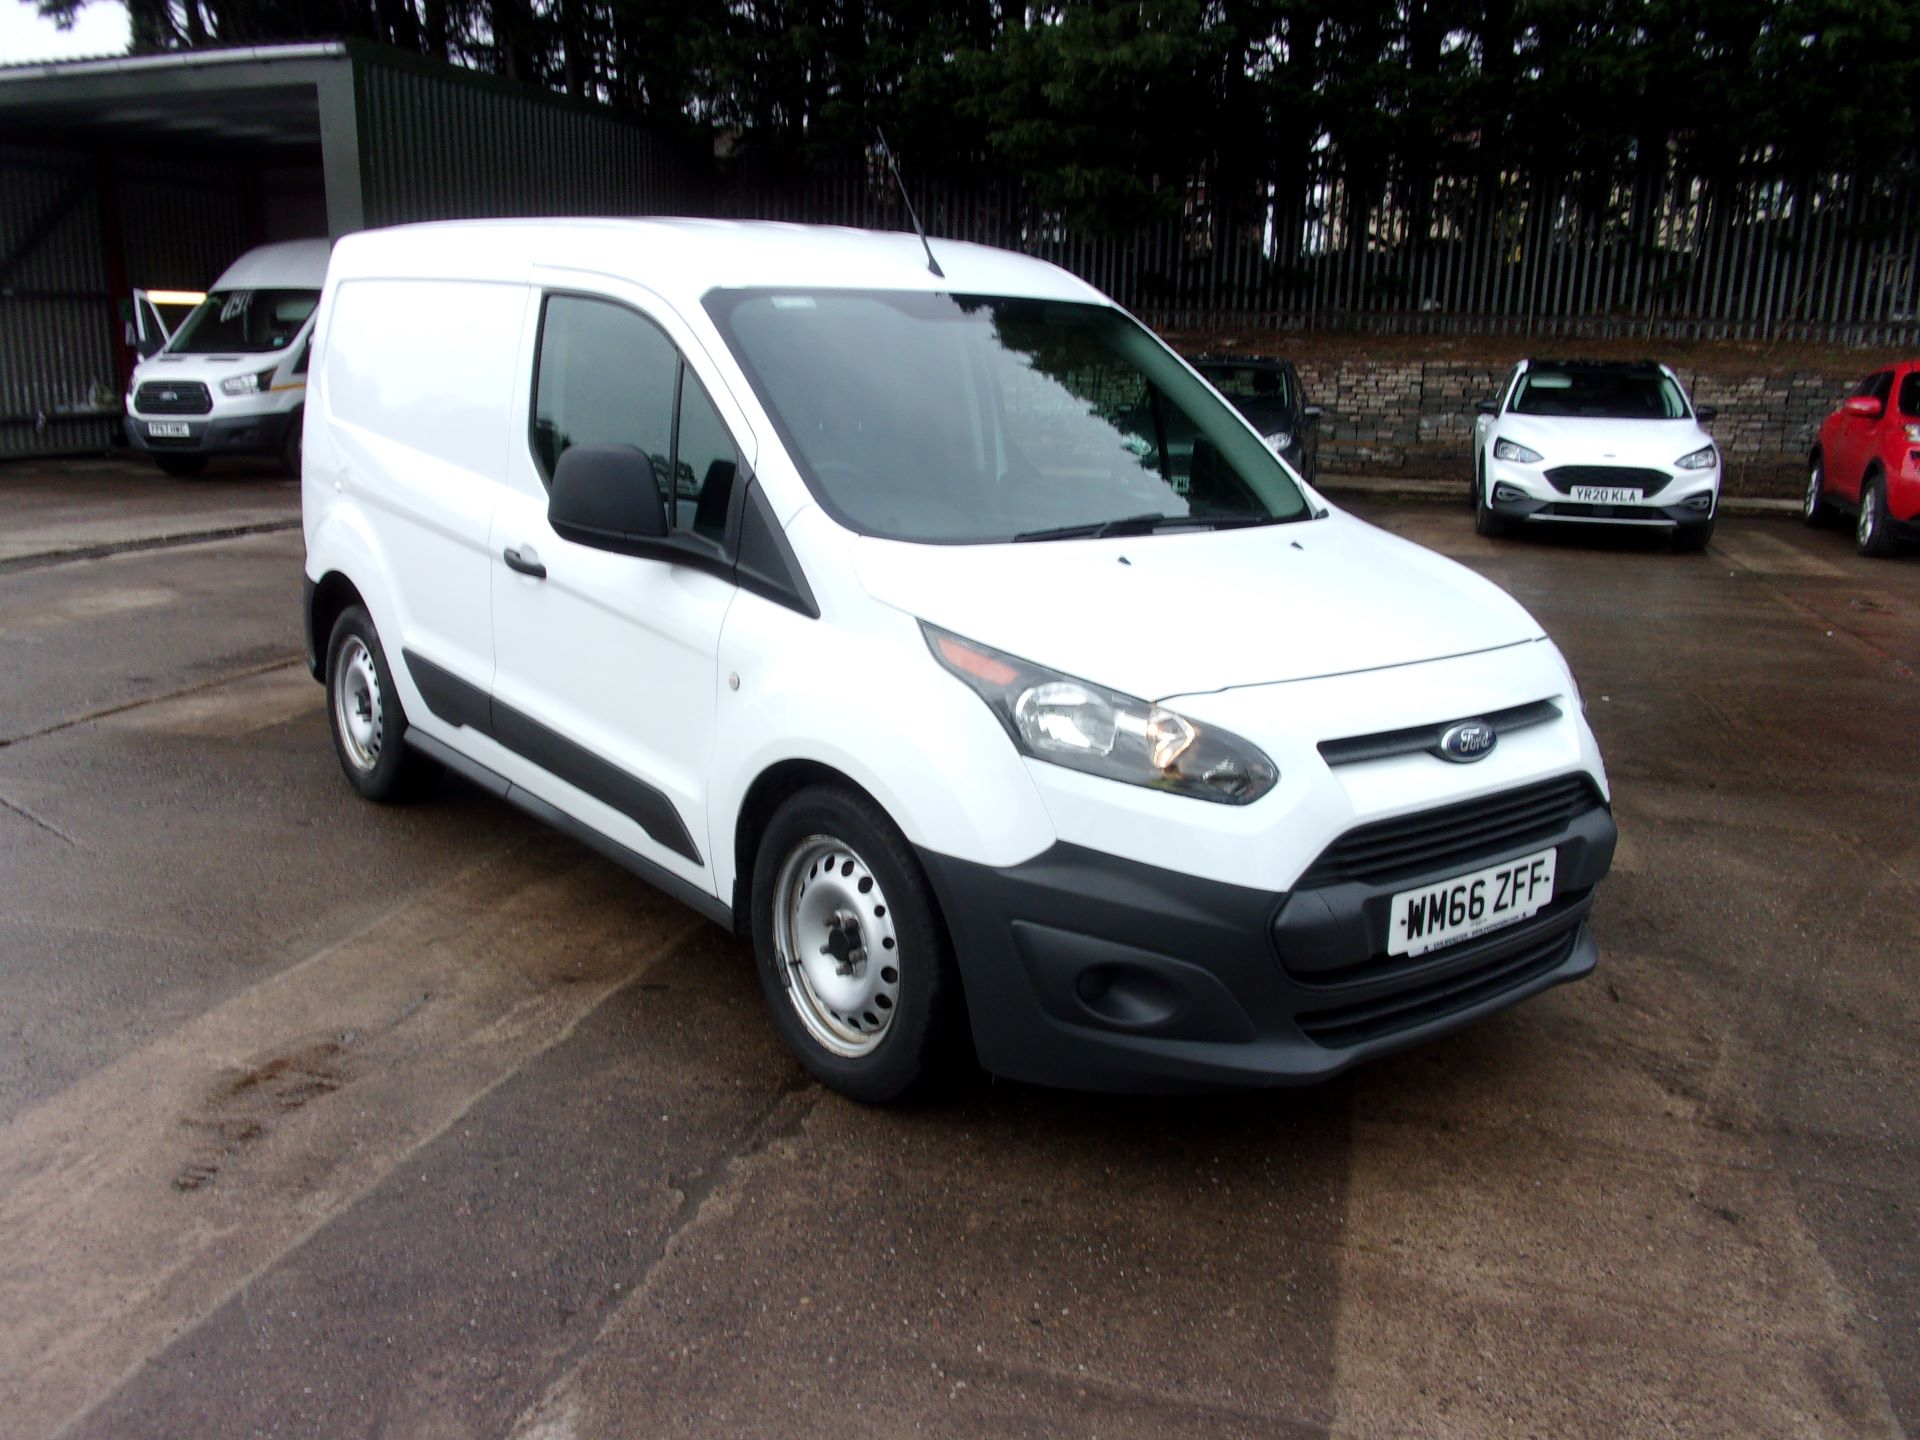 2016 Ford Transit Connect 200 L1 DIESEL 1.5 TDCI 75PS VAN (WM66ZFF)